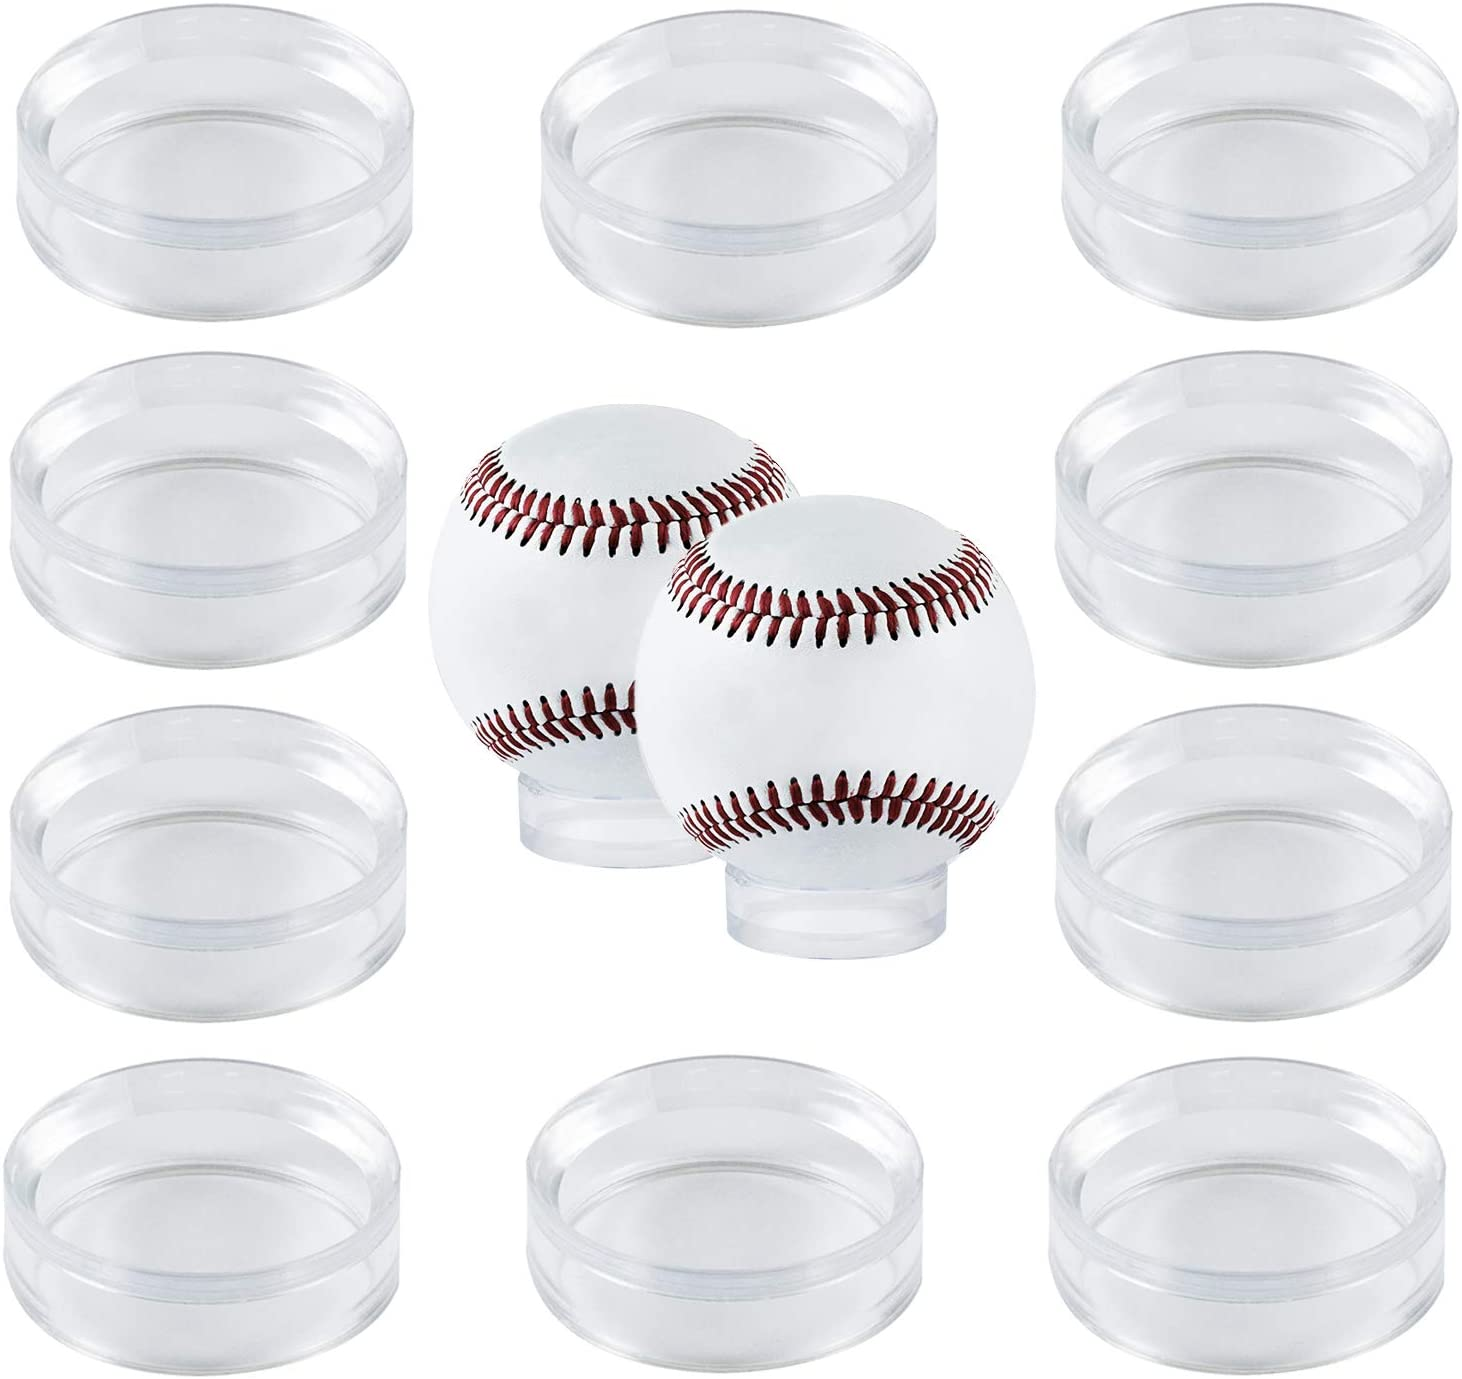 "Houseables Baseball Display, Stand Ring for Ball, 12 Pack, Clear, 1.6"" D x ½ H, 1 5/8"", Acrylic, Softball Displays, Baseballs Holder, Stone Egg Stands, Round Pedestal Rack, Beveled Rings, Balls Case"